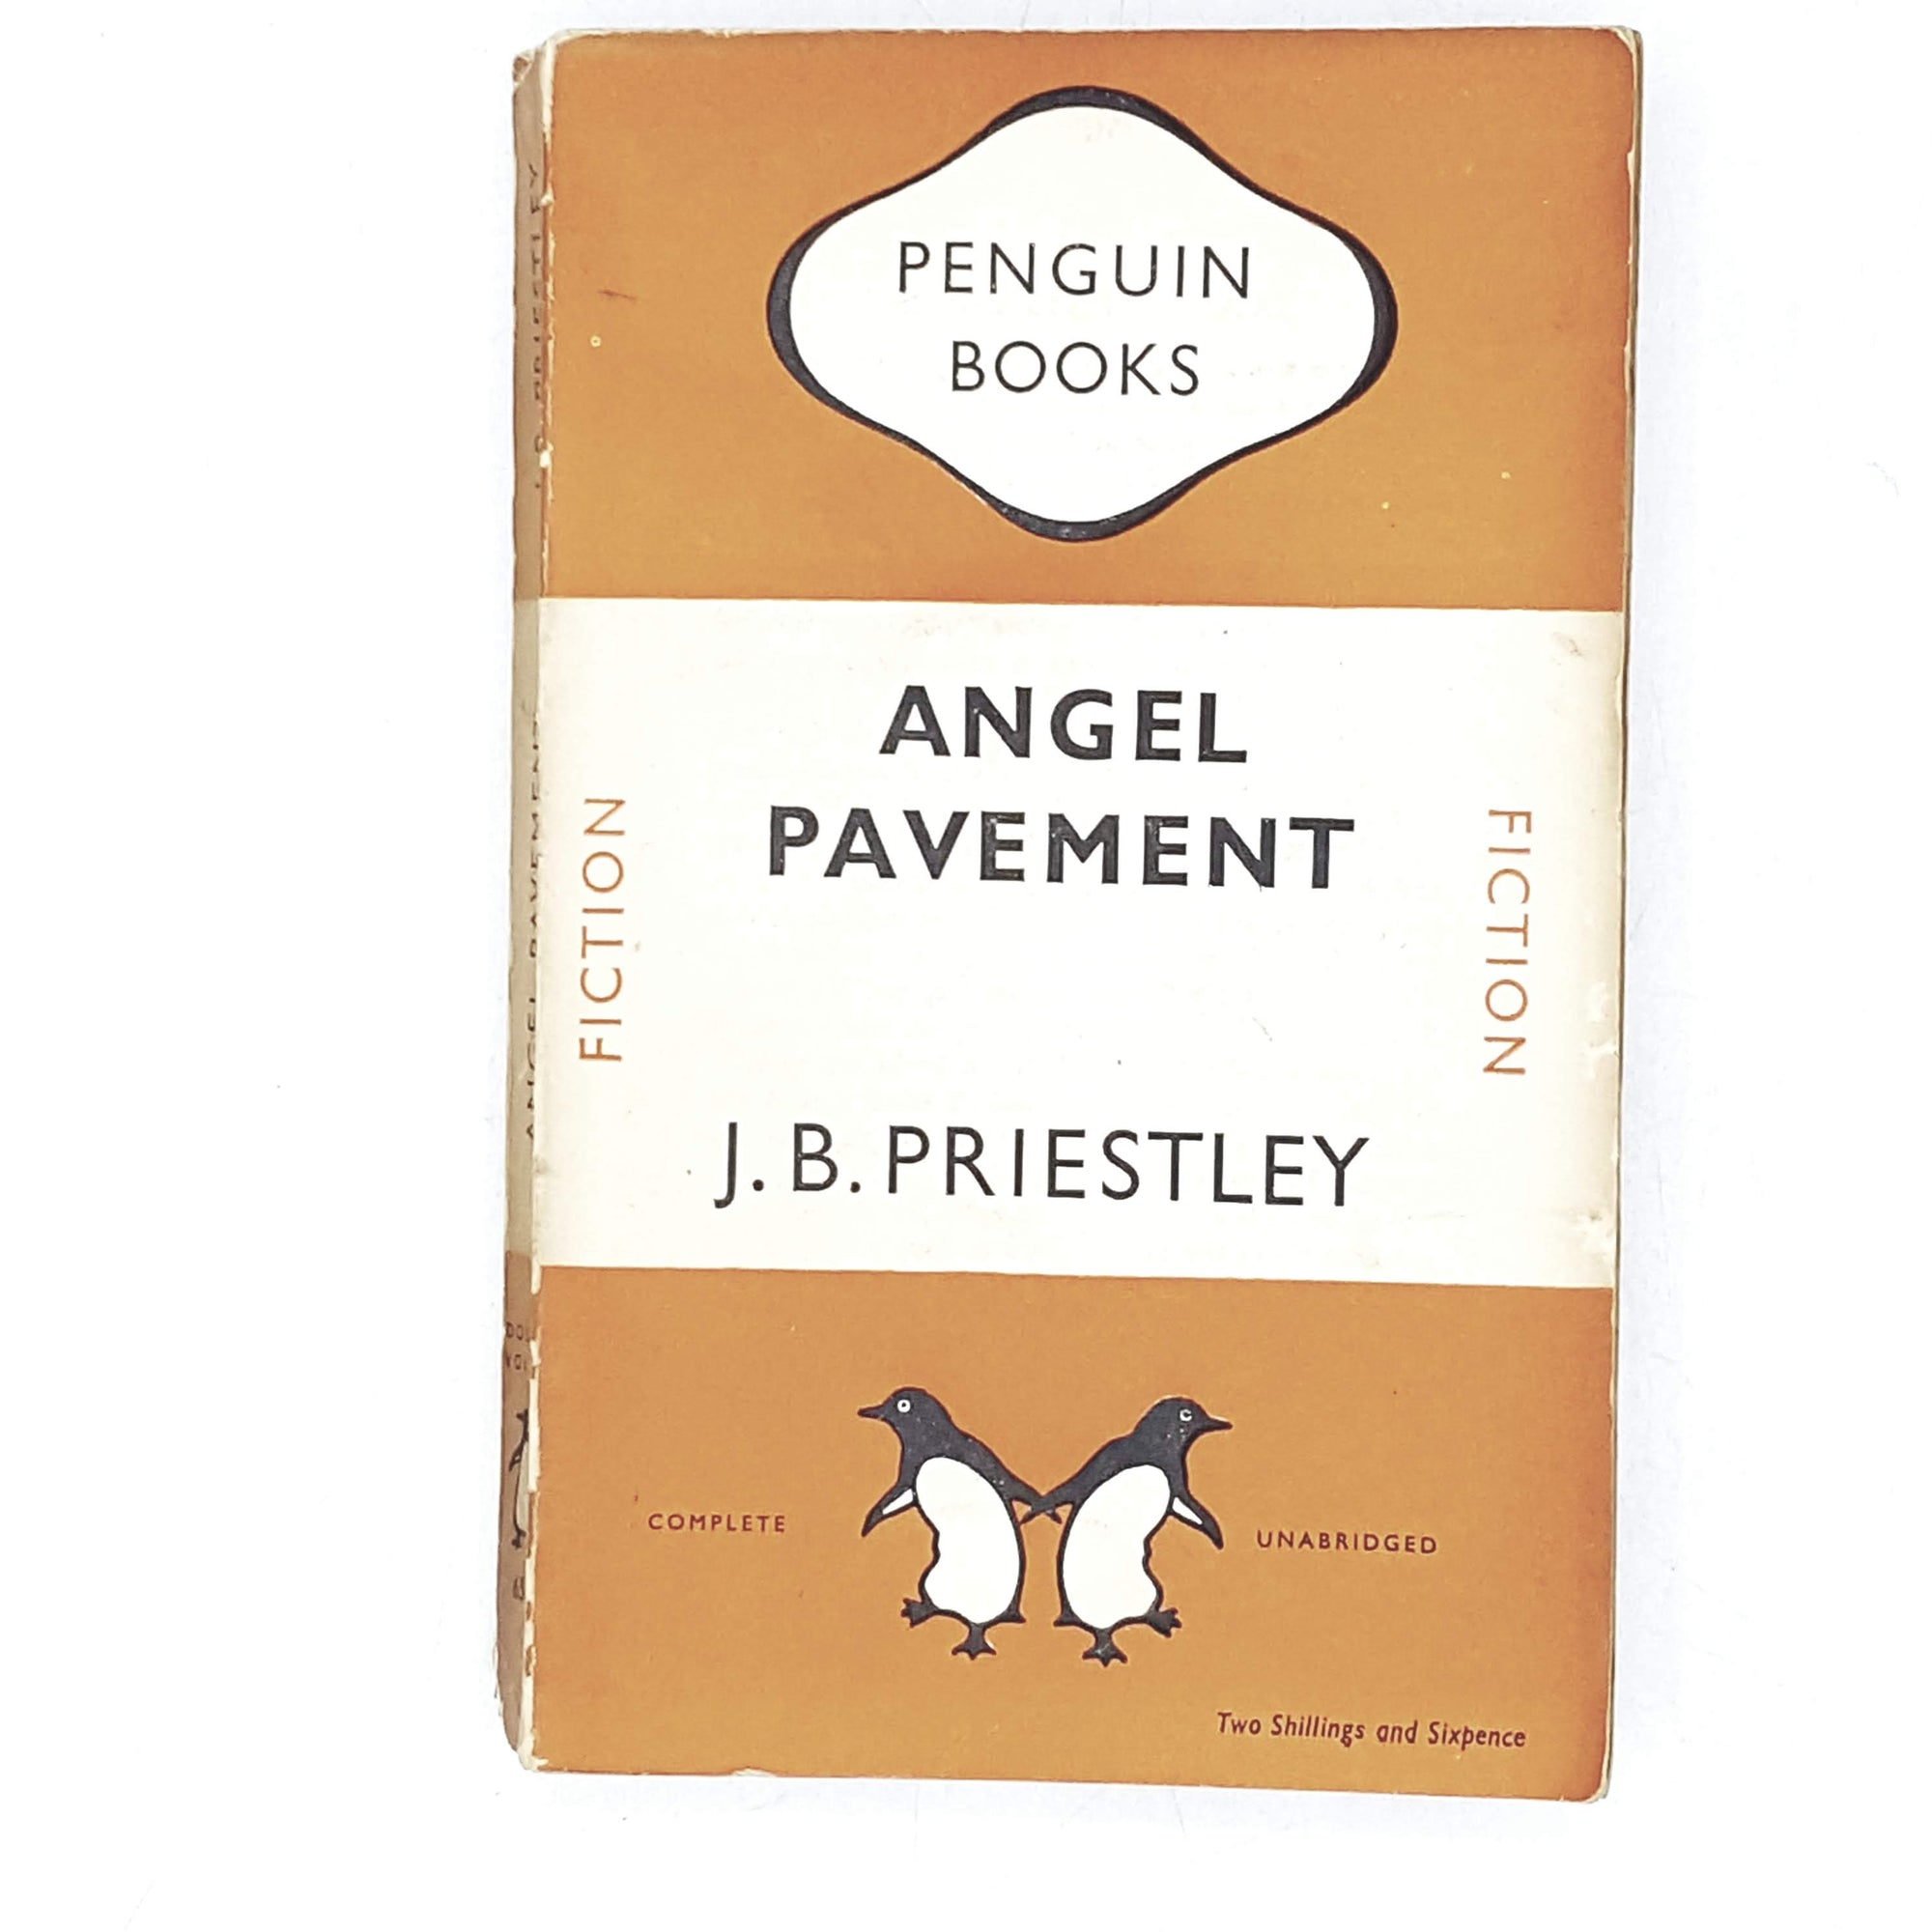 vintage-penguin-angel-pavement-by-j-b-priestley-1949-orange-antique-books-country-house-library